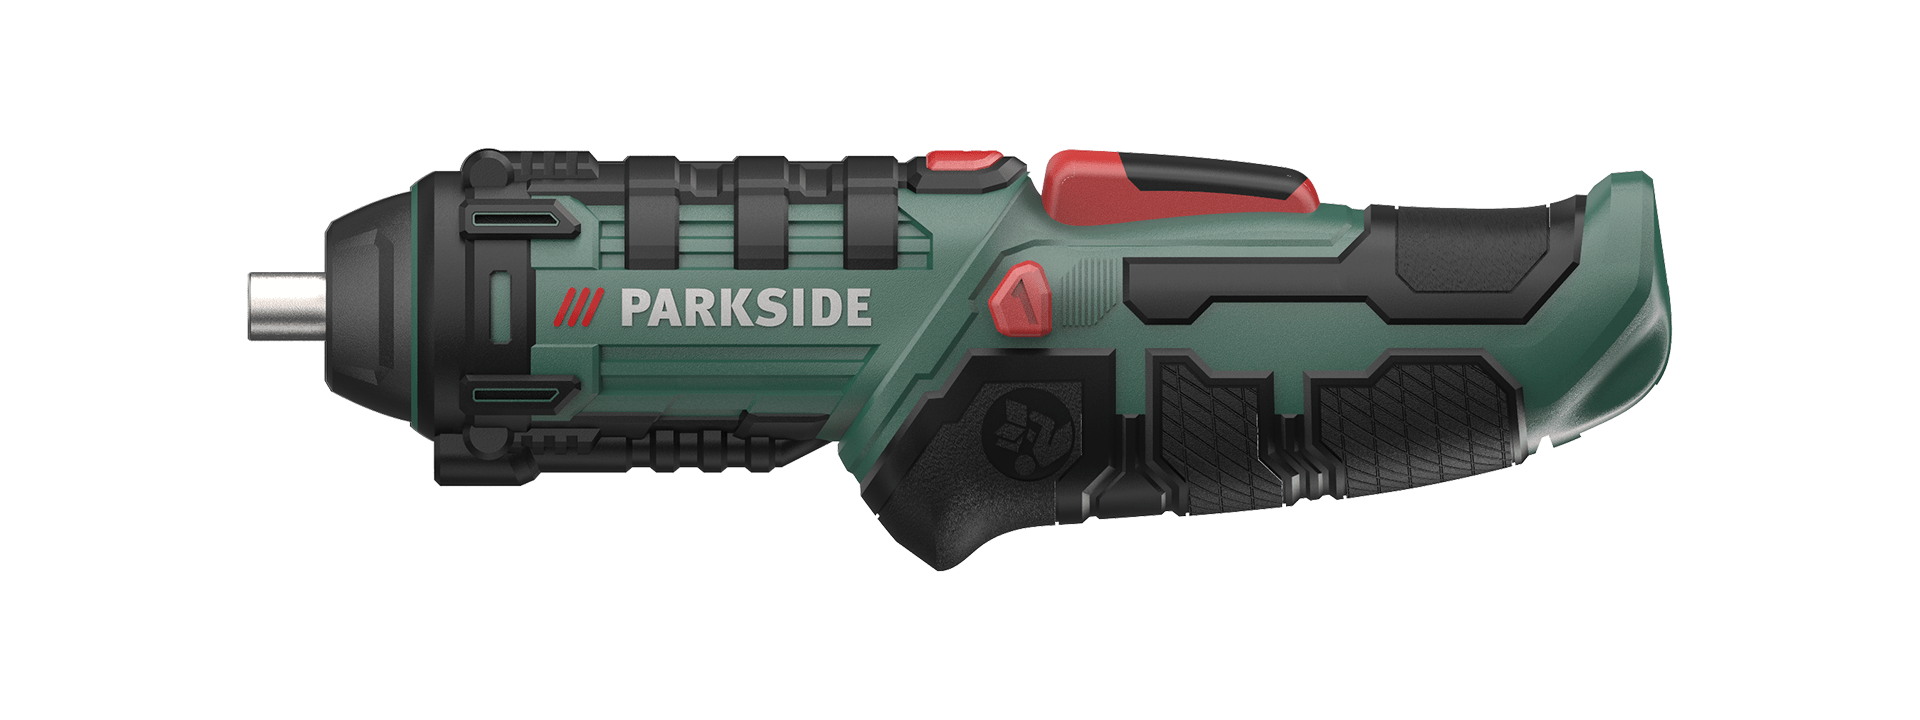 Parkside_Flashcell_Industriedesign_Parallax